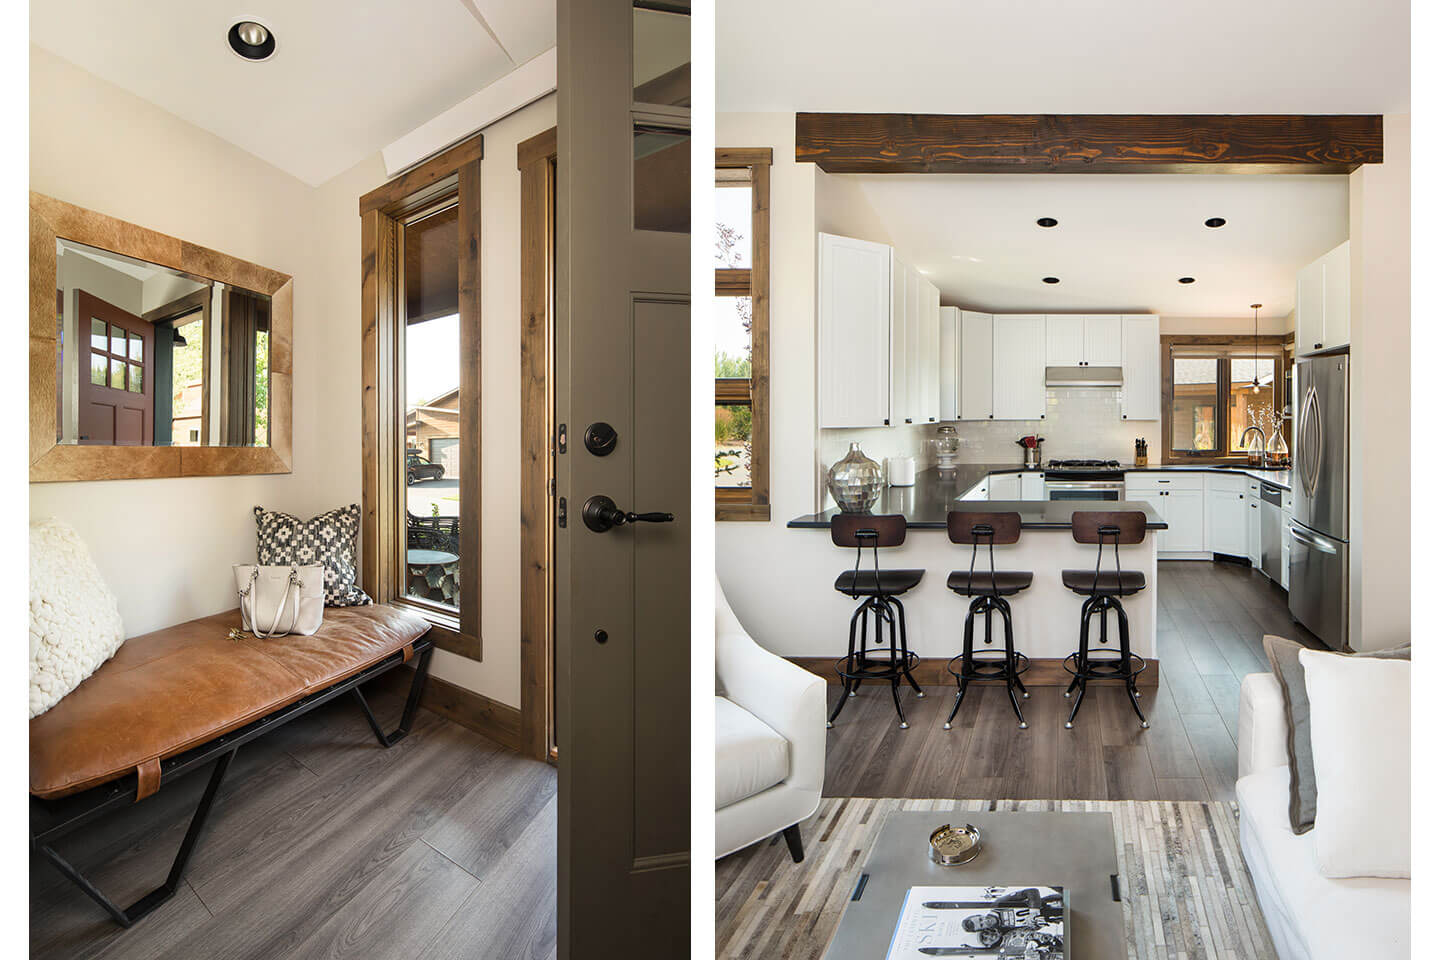 Entryway with bench and kitchen view